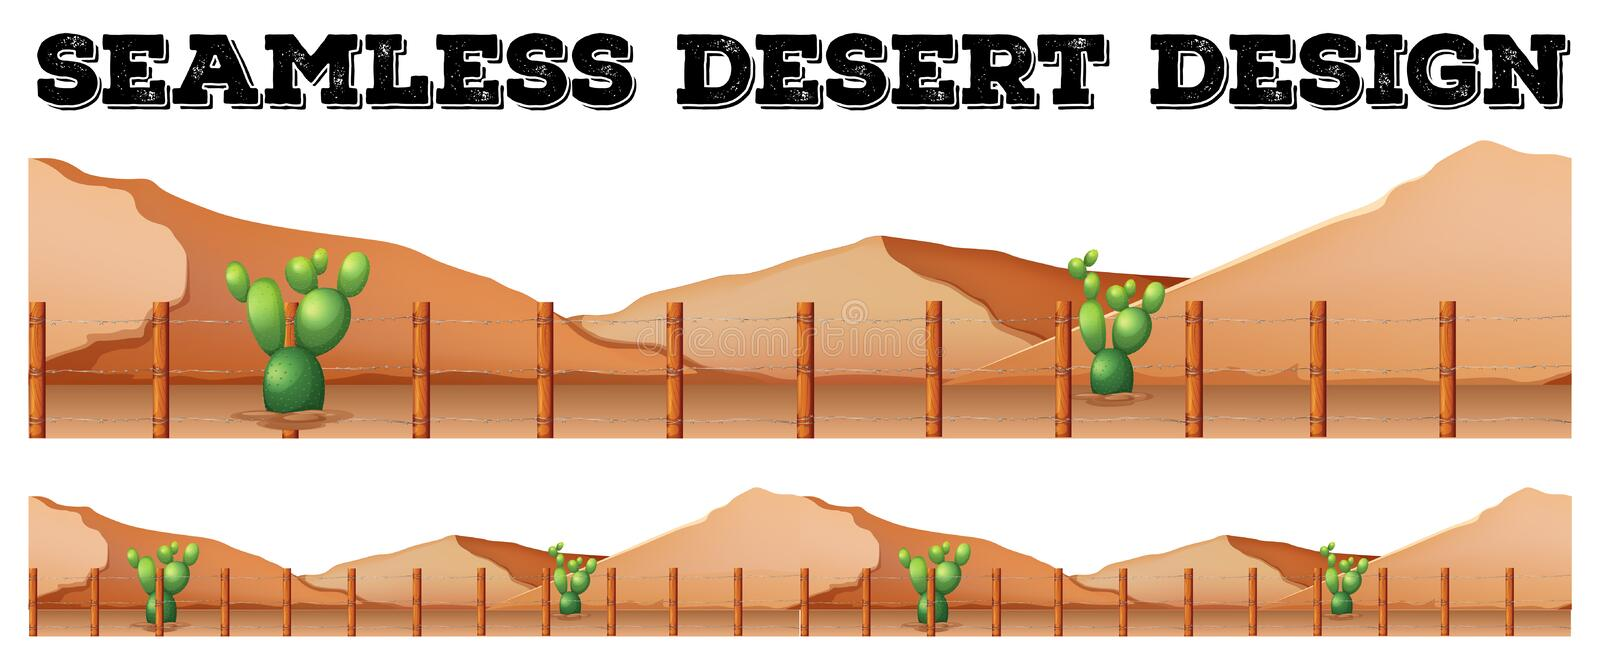 Seamless background design with cactus in desert stock illustration